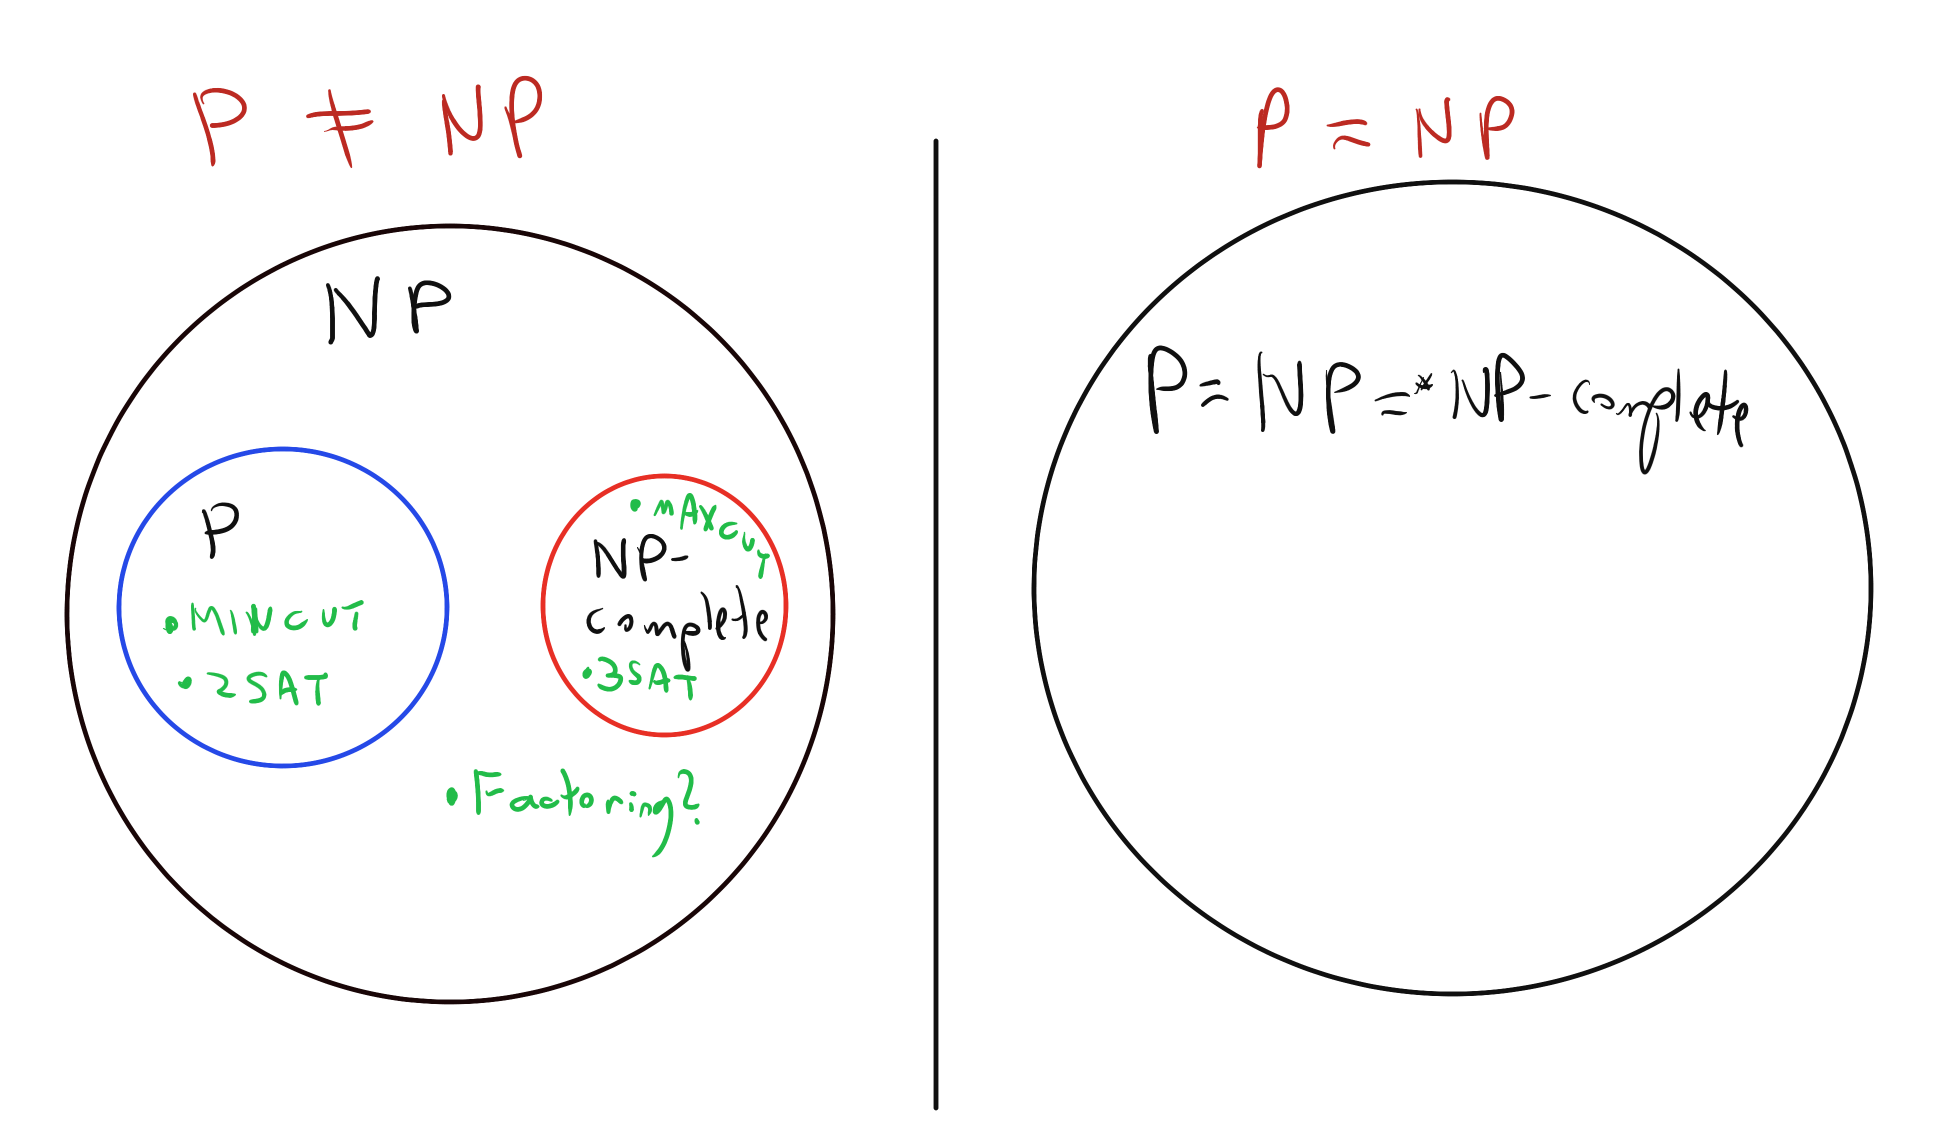 The world if \mathbf{P}\neq \mathbf{NP} (left) and \mathbf{P}=\mathbf{NP} (right). In the former case the set of \mathbf{NP}-complete problems is disjoint from \mathbf{P} and Ladner's theorem shows that there exist problems that are neither in \mathbf{P} nor are \mathbf{NP}-complete. (There are remarkably few natural candidates for such problems, with some prominent examples being decision variants of problems such as integer factoring, lattice shortest vector, and finding Nash equilibria.) In the latter case that \mathbf{P}=\mathbf{NP} the notion of \mathbf{NP}-completeness loses its meaning, as essentially all functions in \mathbf{P} (save for the trivial constant zero and constant one functions) are \mathbf{NP}-complete.